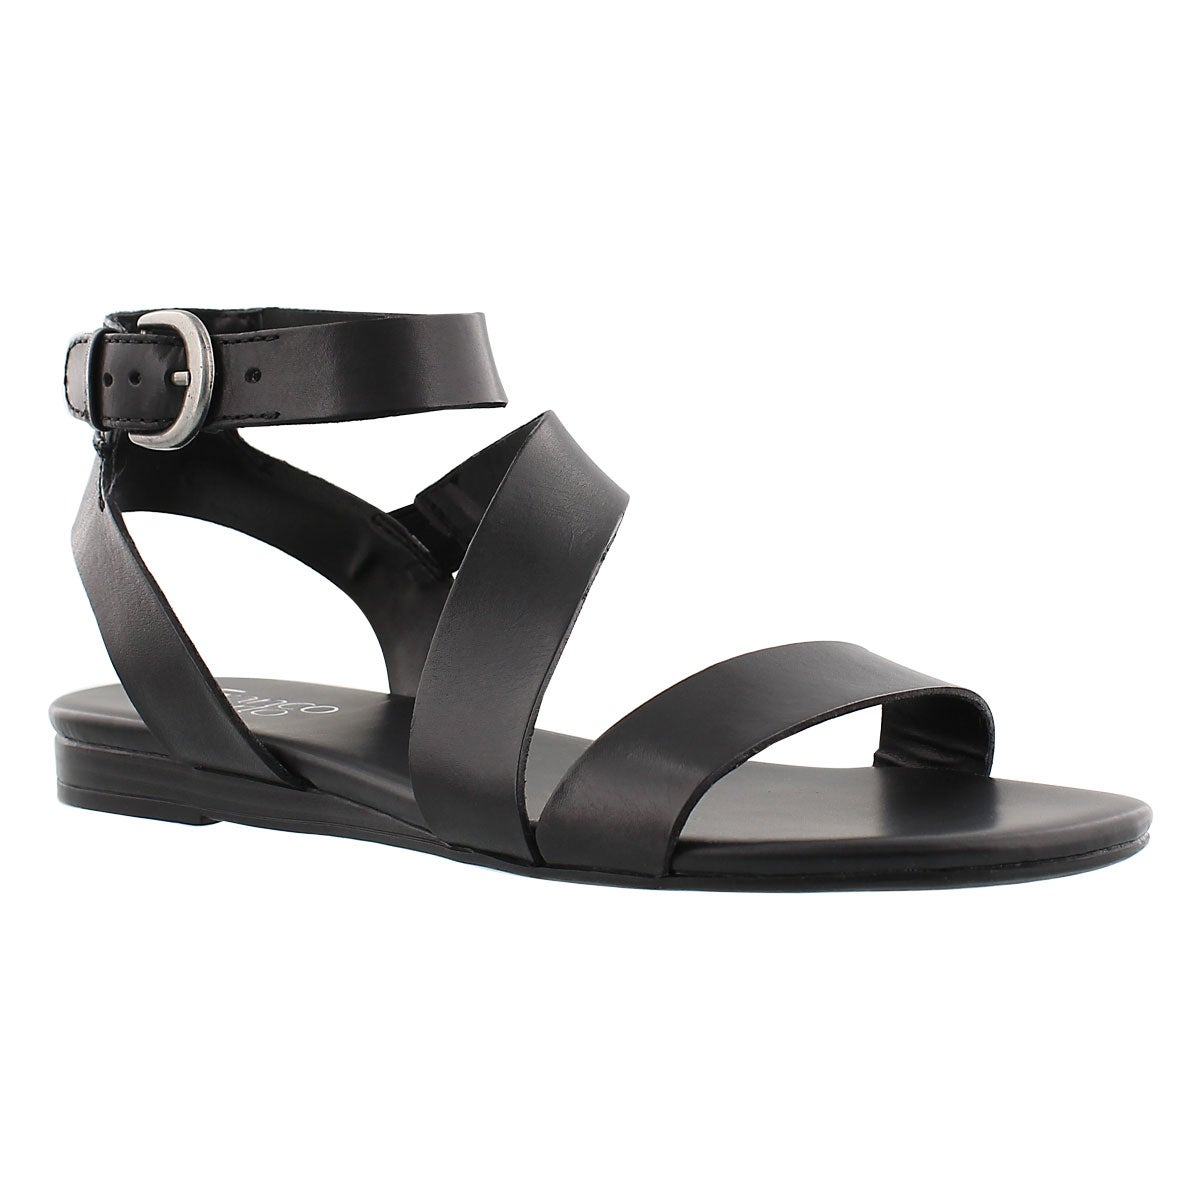 Women's GUSTER black ankle strap casual sandals